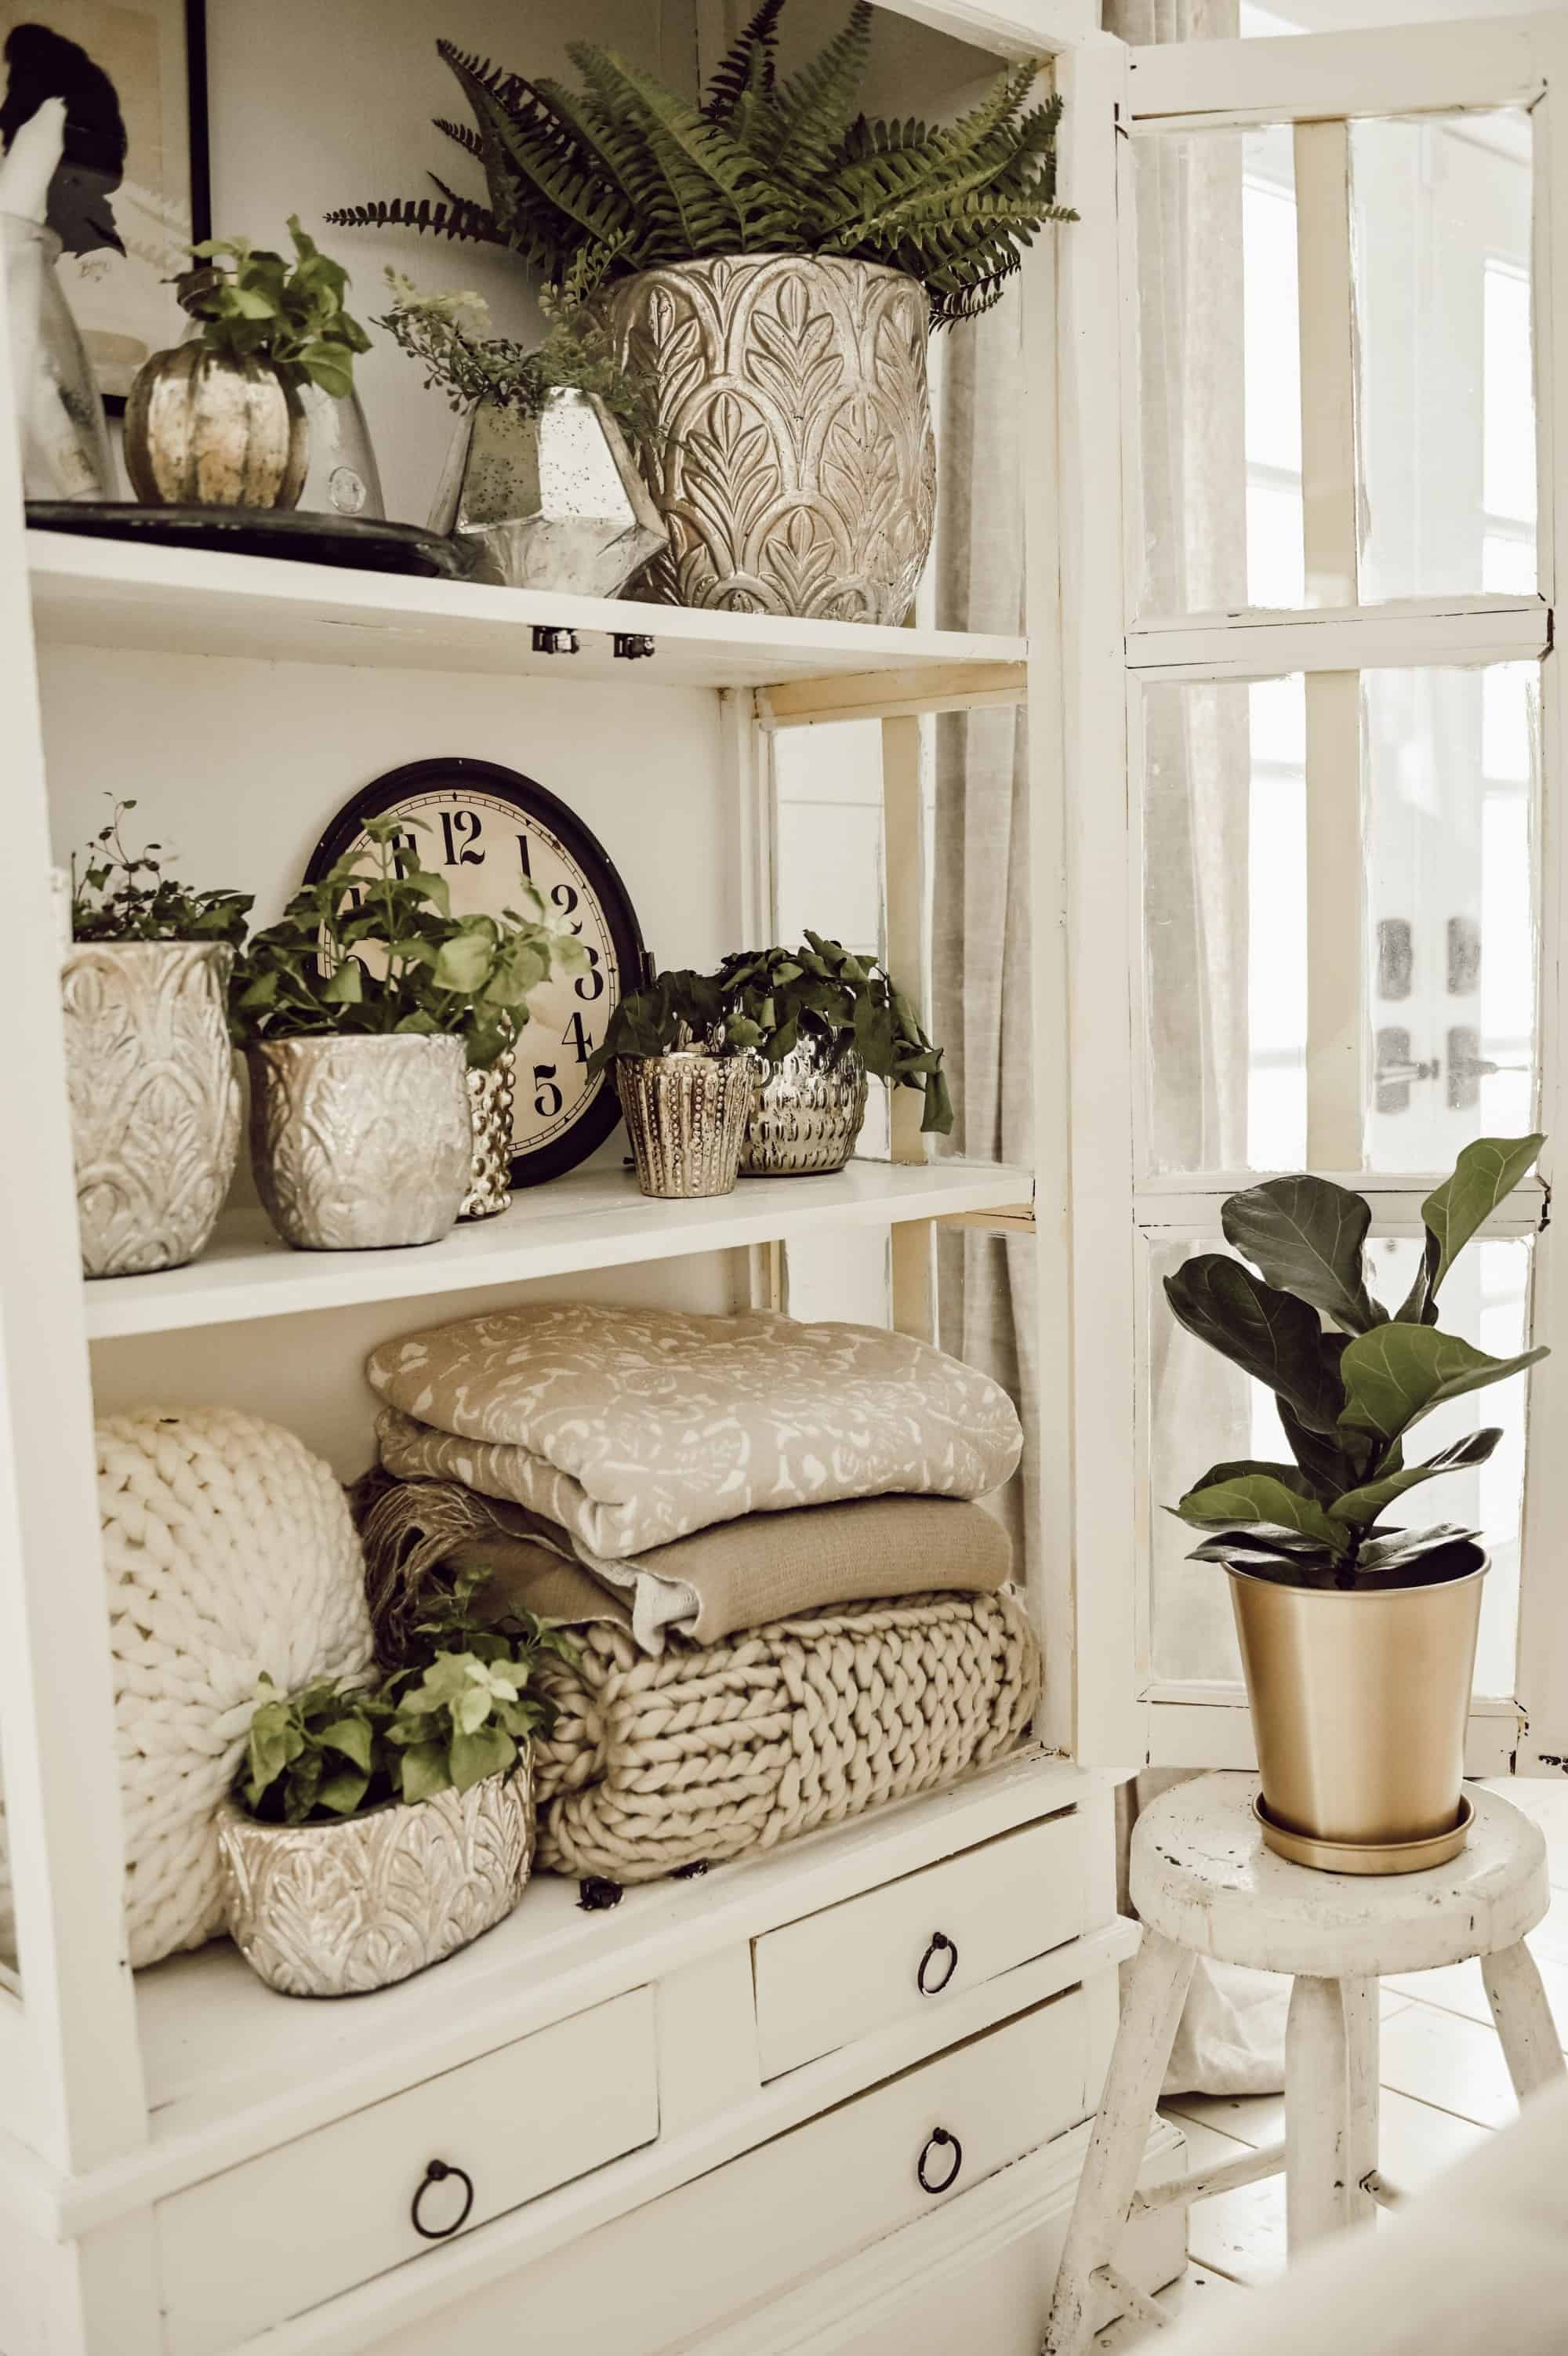 White vintage cabinet with doors open showing farmhouse styled decor like plants, folded cozy planets, clock